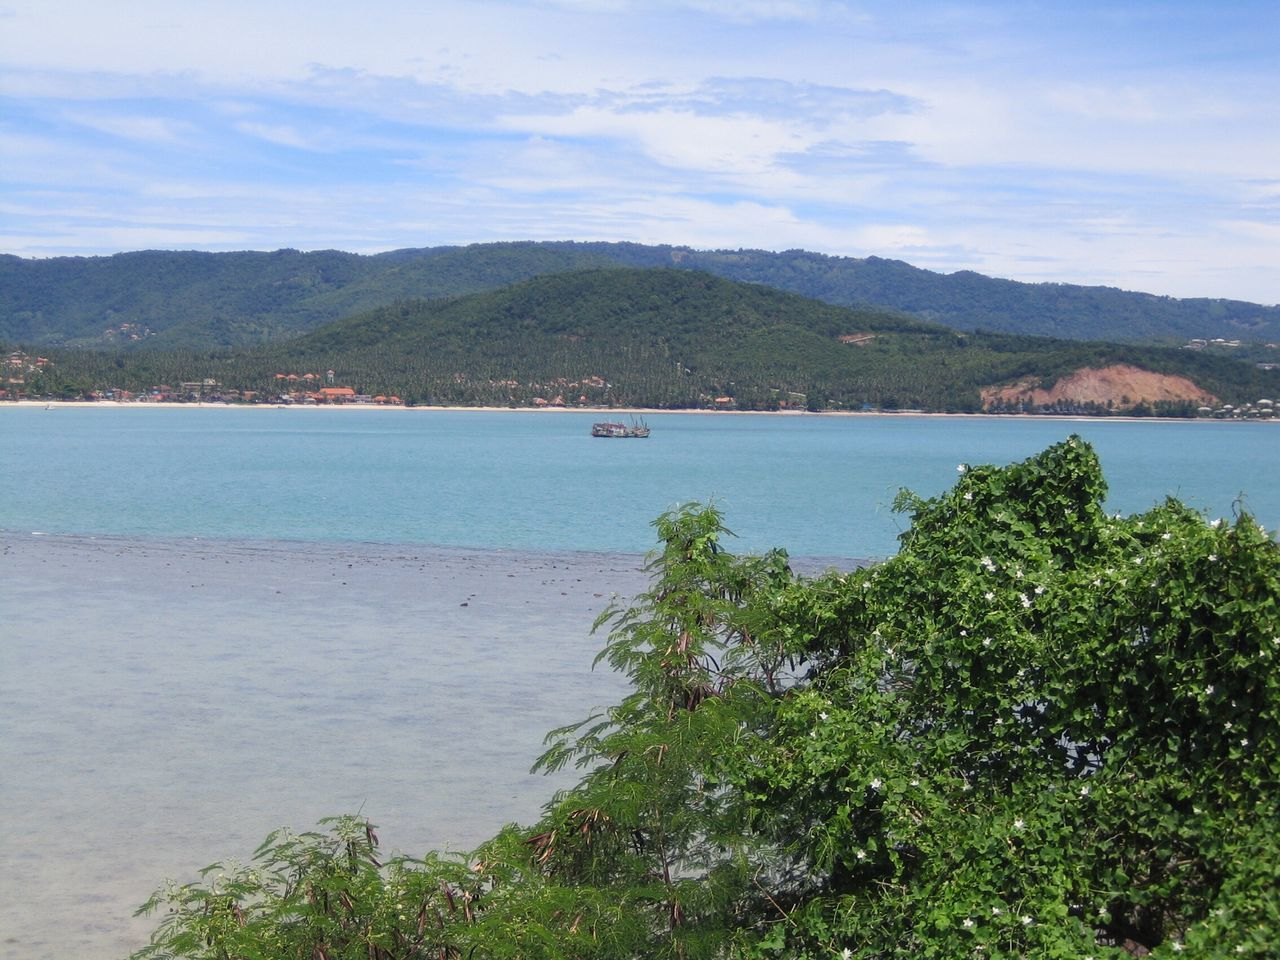 OverviewPoint Overview Koh Samui Thailand Sky Clouds Sky And Clouds Clouds And Sky Mountains Dschungel Coast Coastline